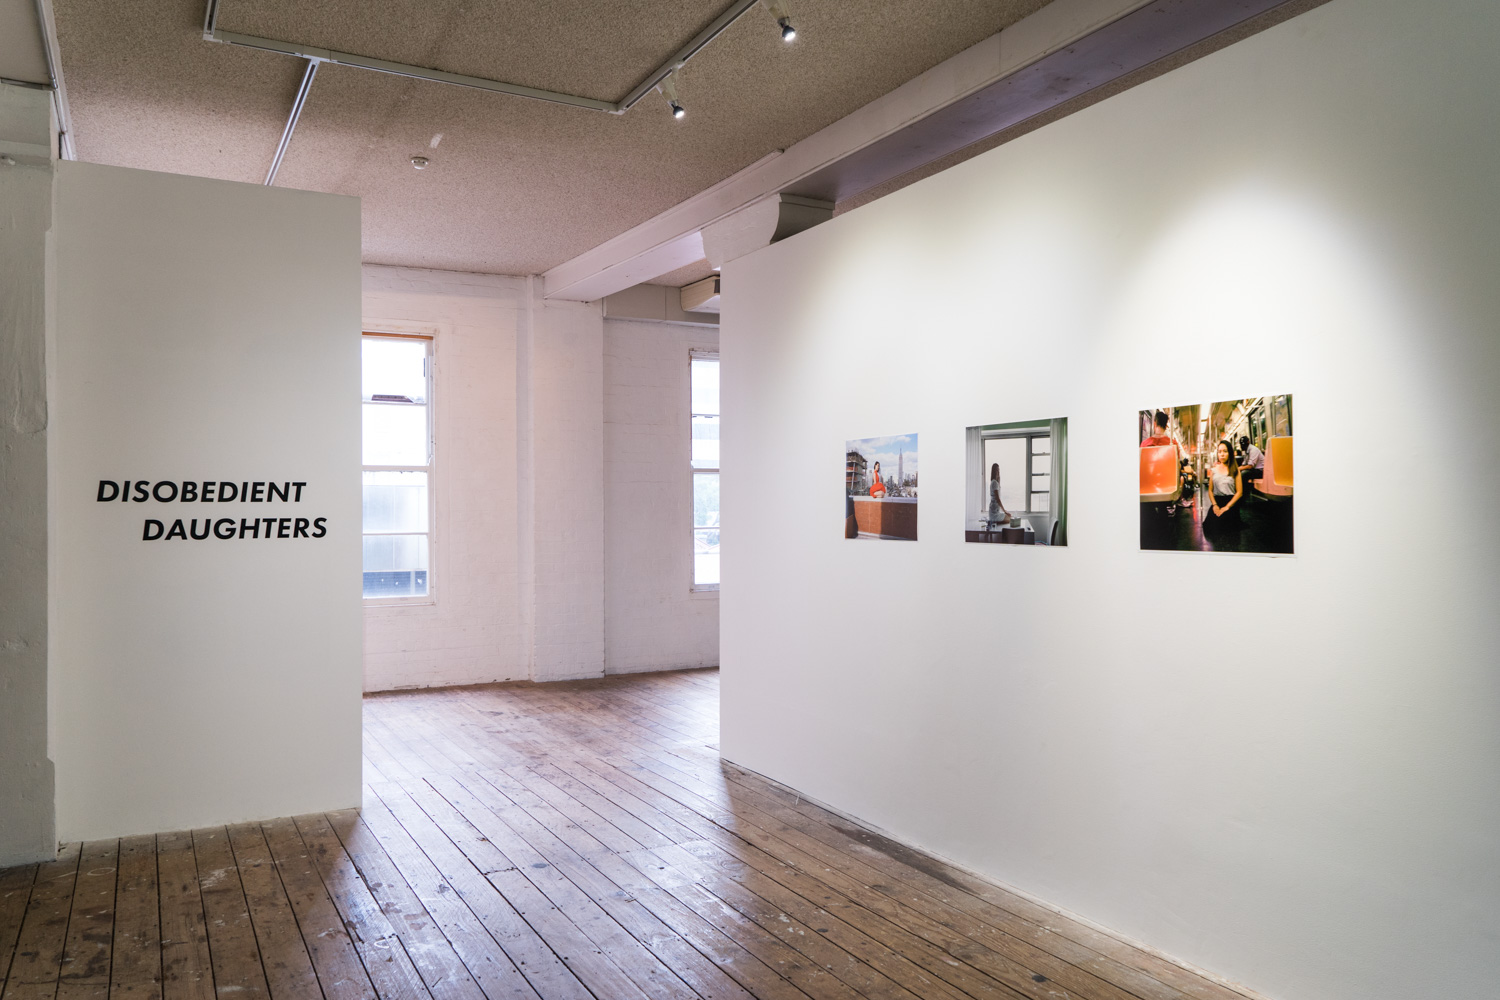 Mihyun Kang,  You are not speaking but I am listening,  2013 - 14, photo series, installation view,  Disobedient Daughters,  2018, Metro Arts, Brisbane. Photo: Louis Lim.